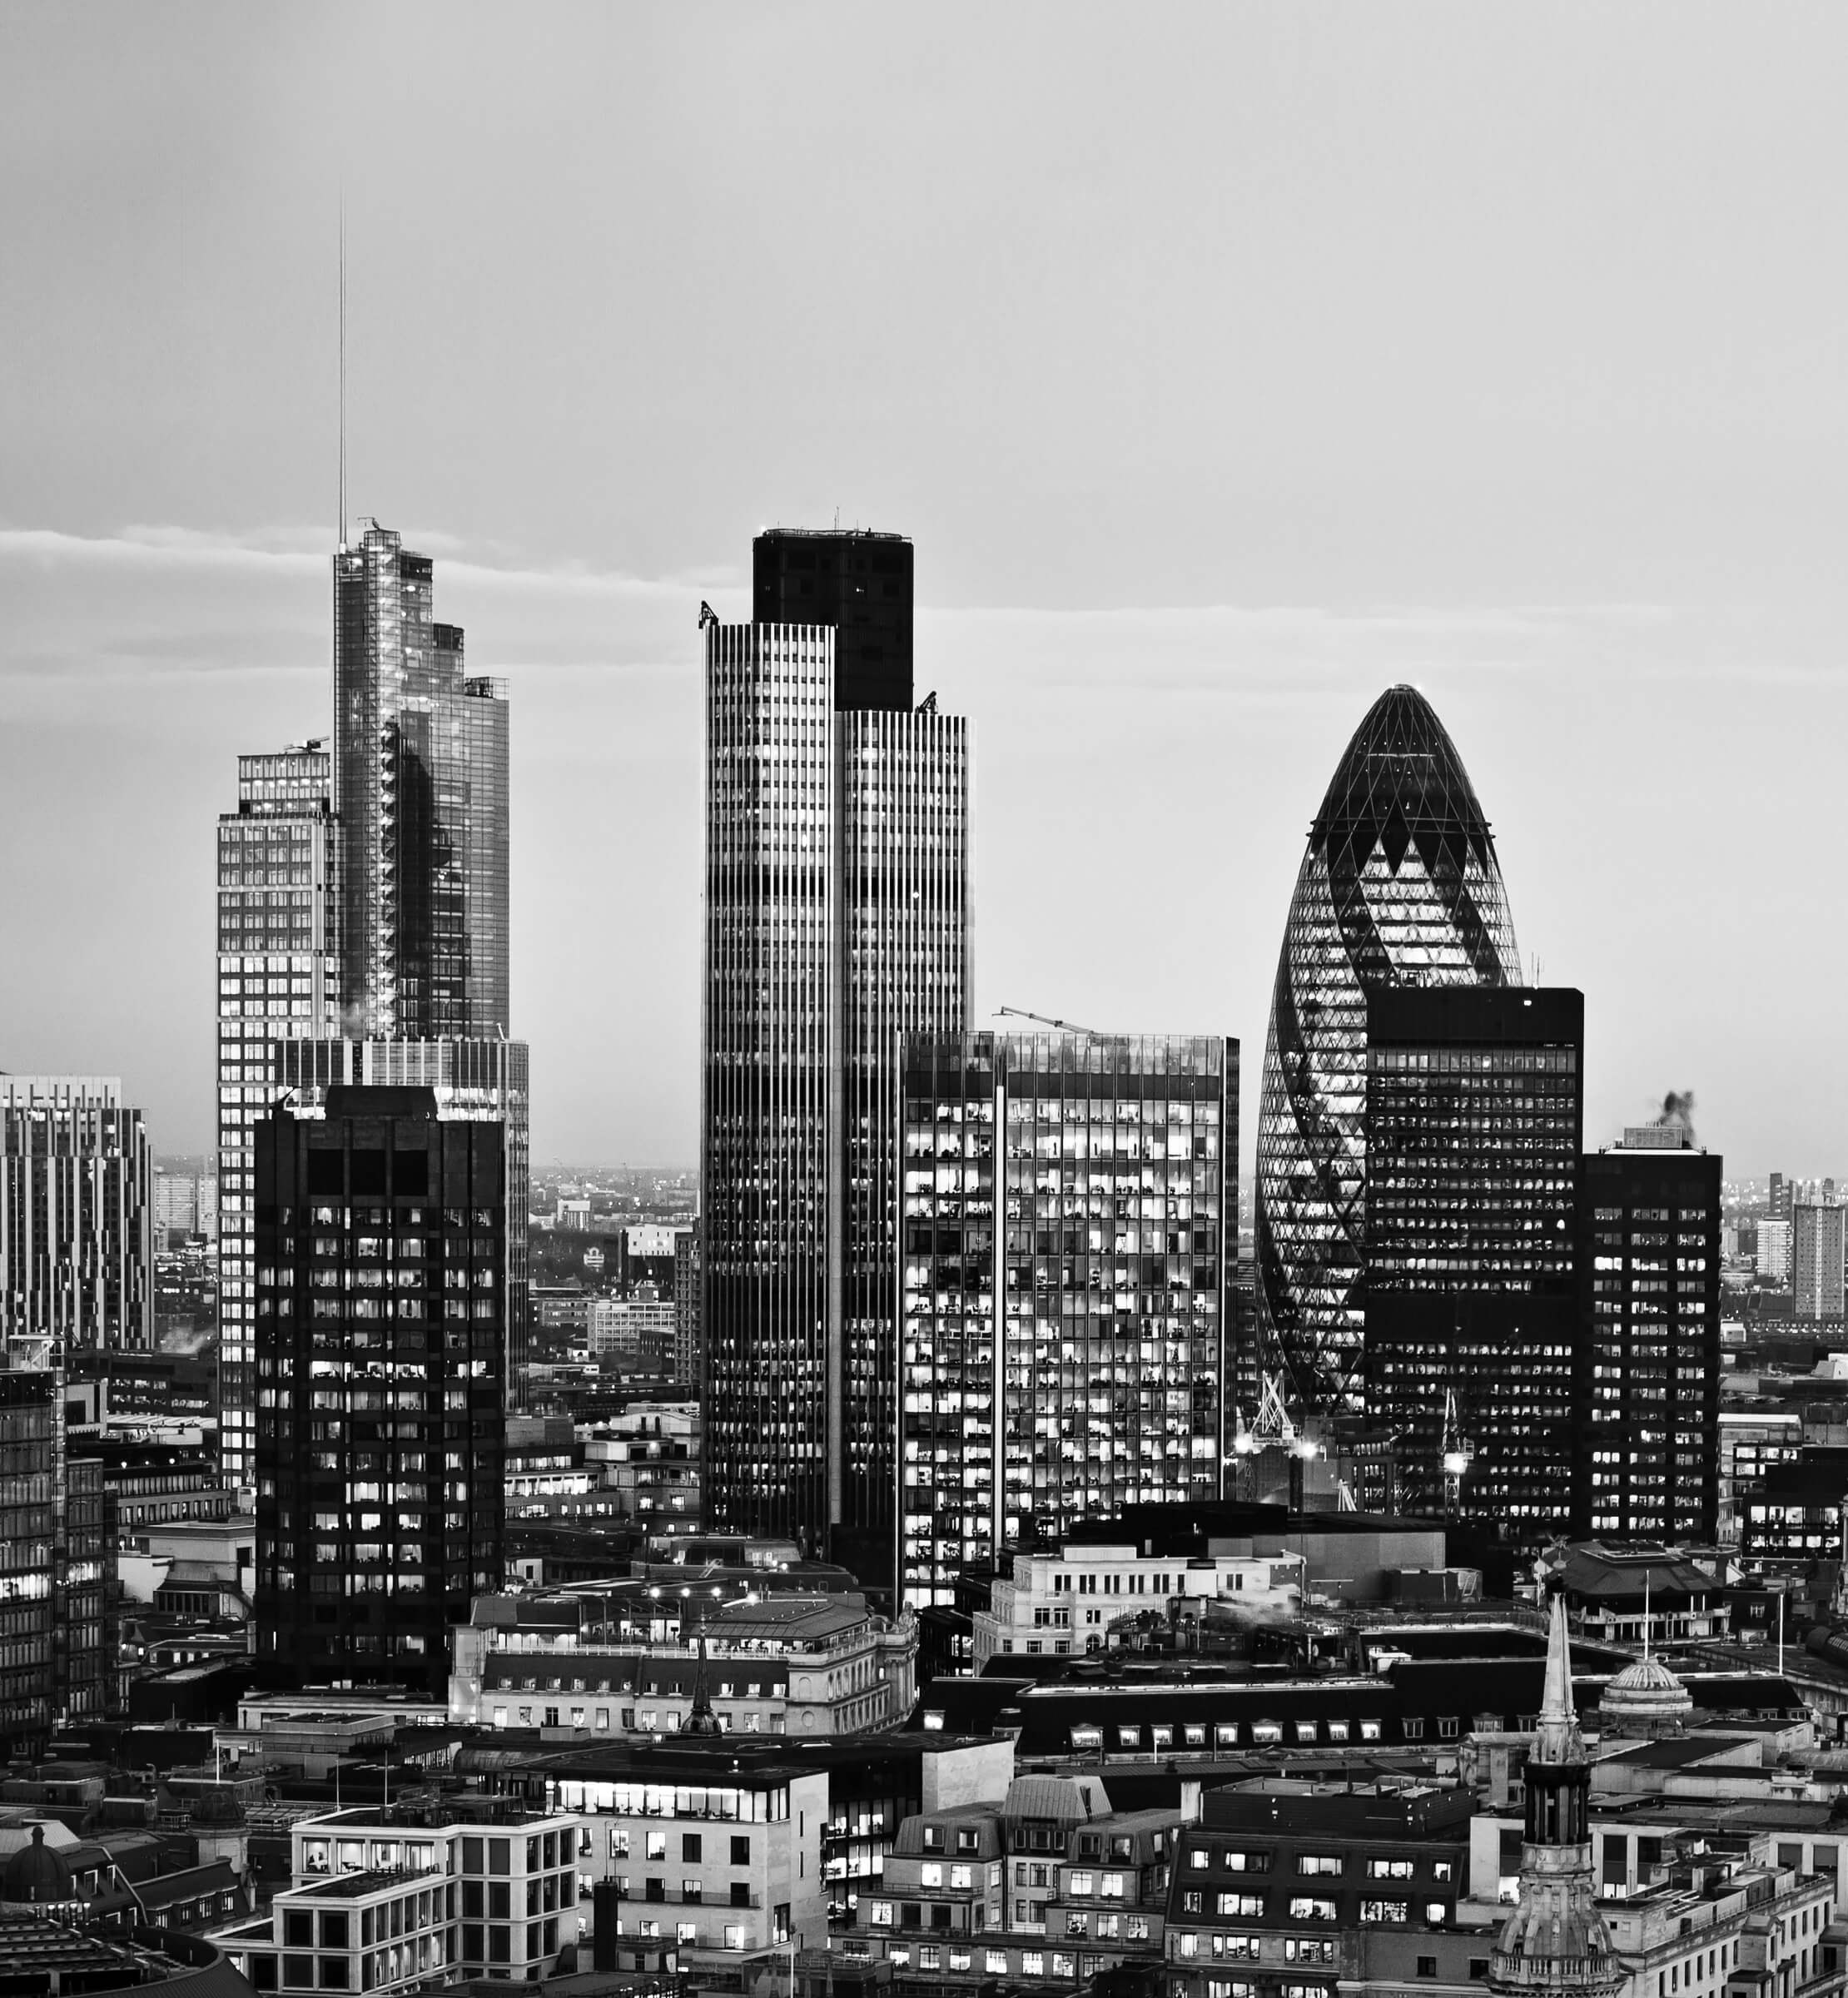 Black and white image of a cityscape of London, including the Gherkin, Tower 42 and Canary Wharf